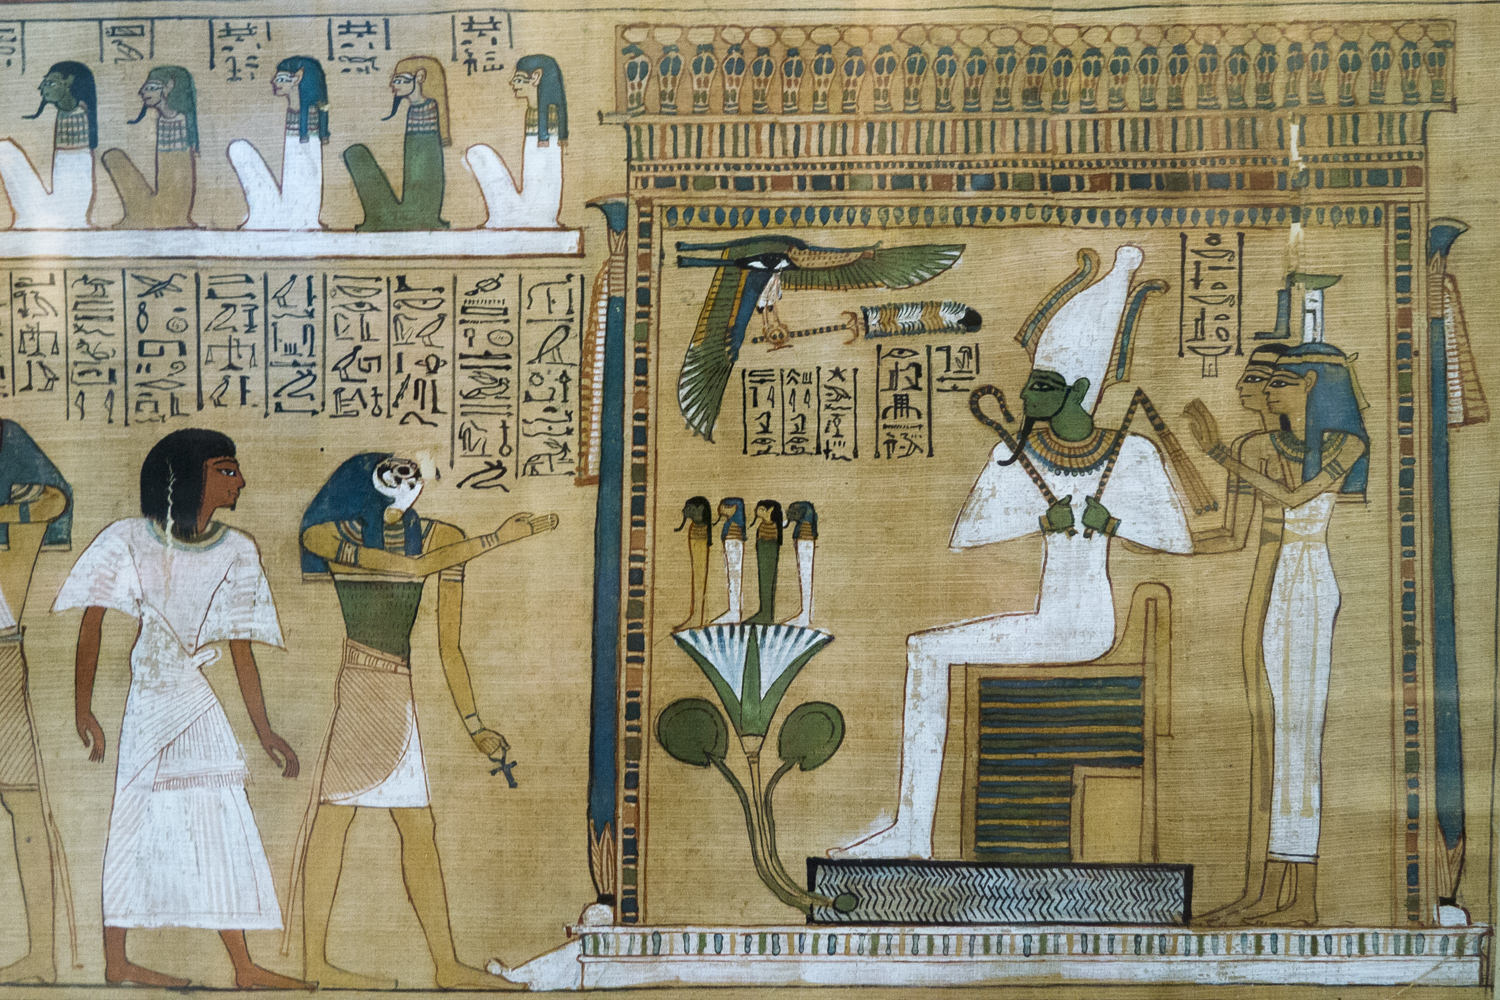 A page from the Book of the Dead showing the deceased before Osiris, Isis and Nephthys